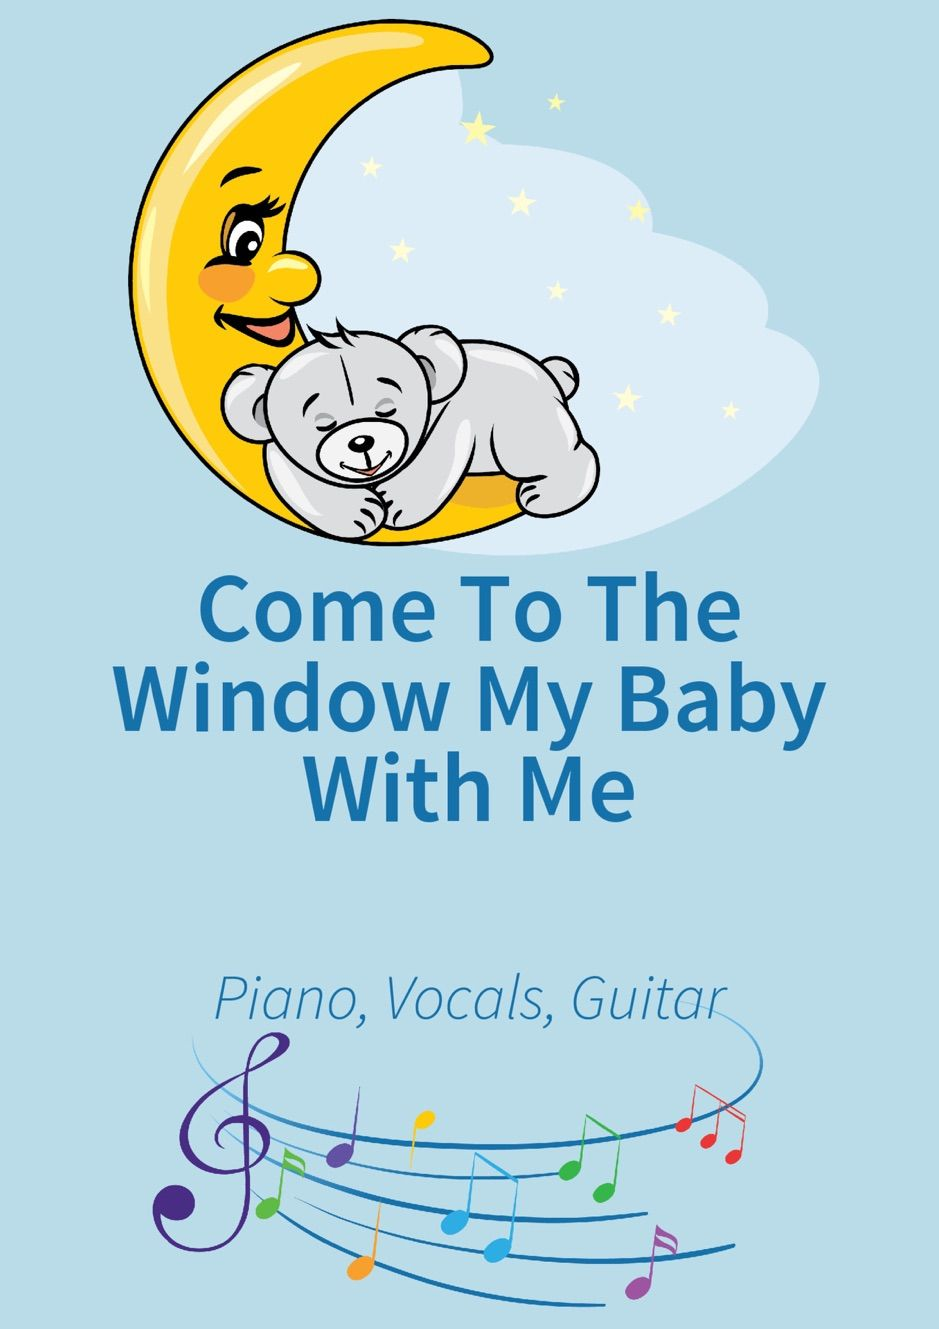 Baby By Me Download Free : download, Come, Window, #spon,, #Baby,, #books,, #download,, #Window, Music, Book,, Childrens, Songs,